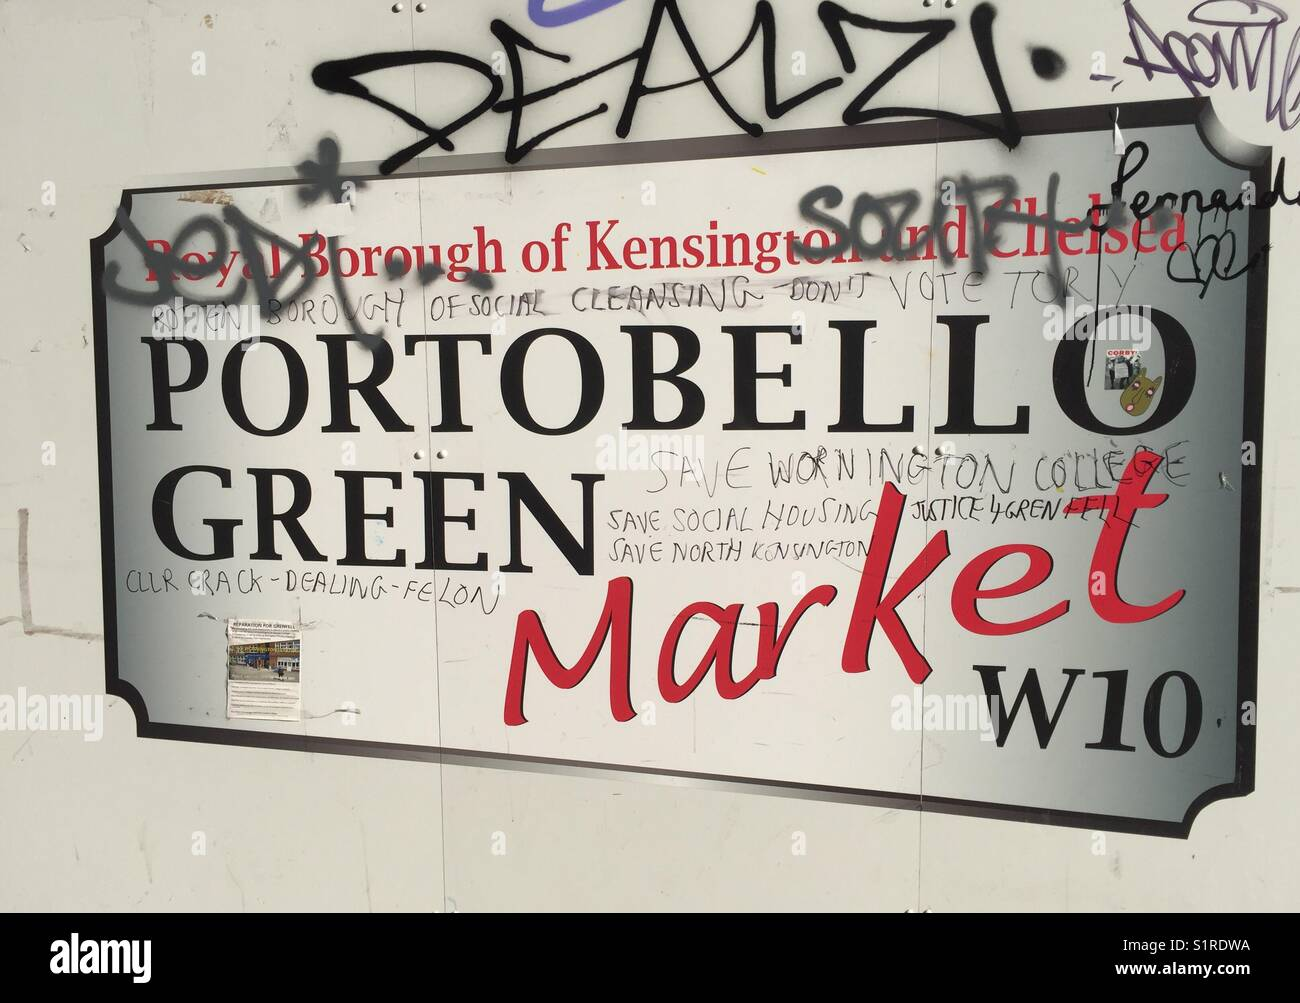 Royal Borough of Kensington and Chelsea, Portobello Green Market sign - Stock Image